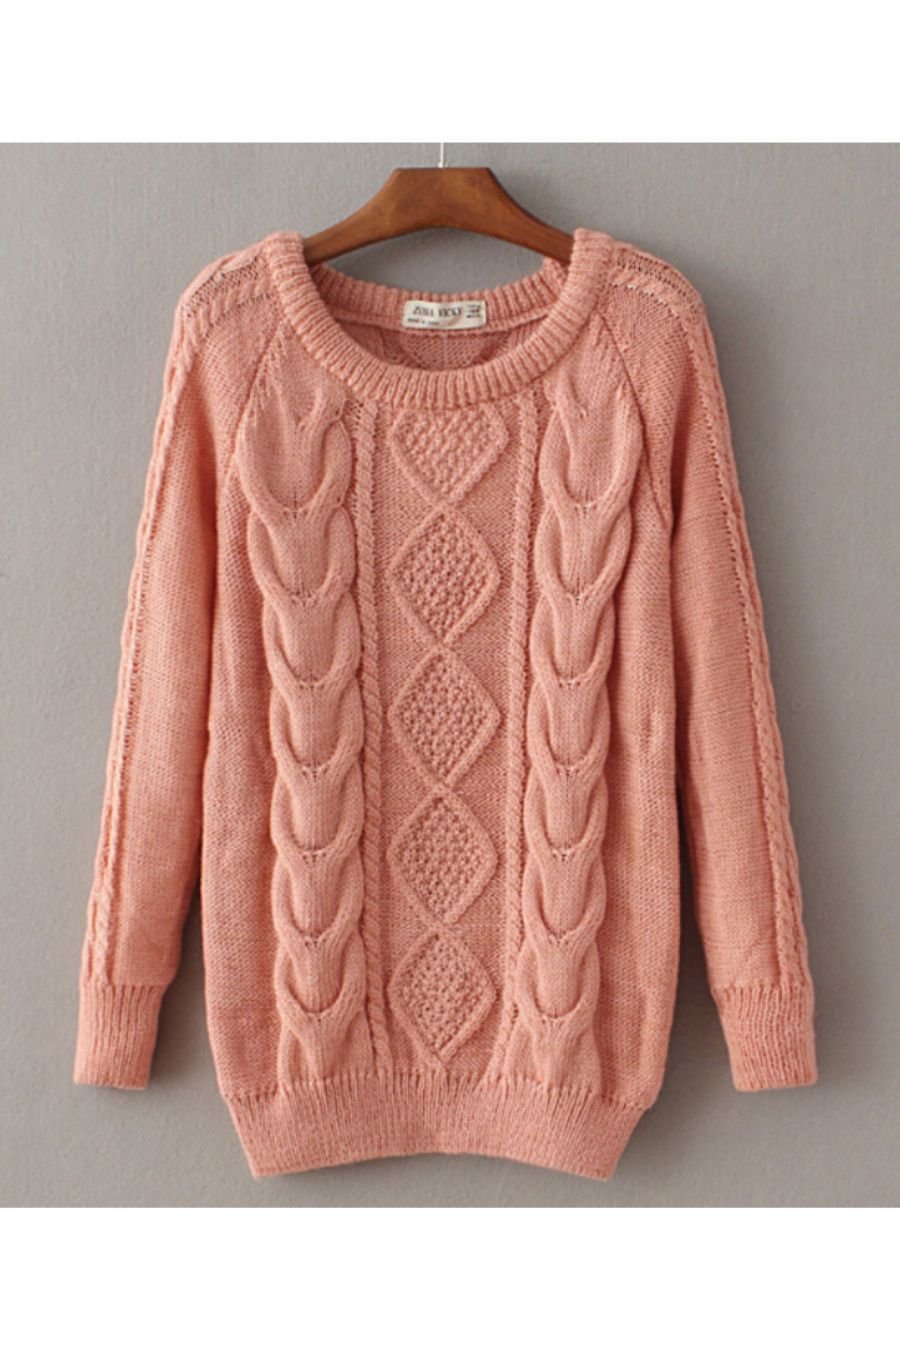 Classic Cable Knit Sweater | Cable knit sweaters, Cable knitting ...